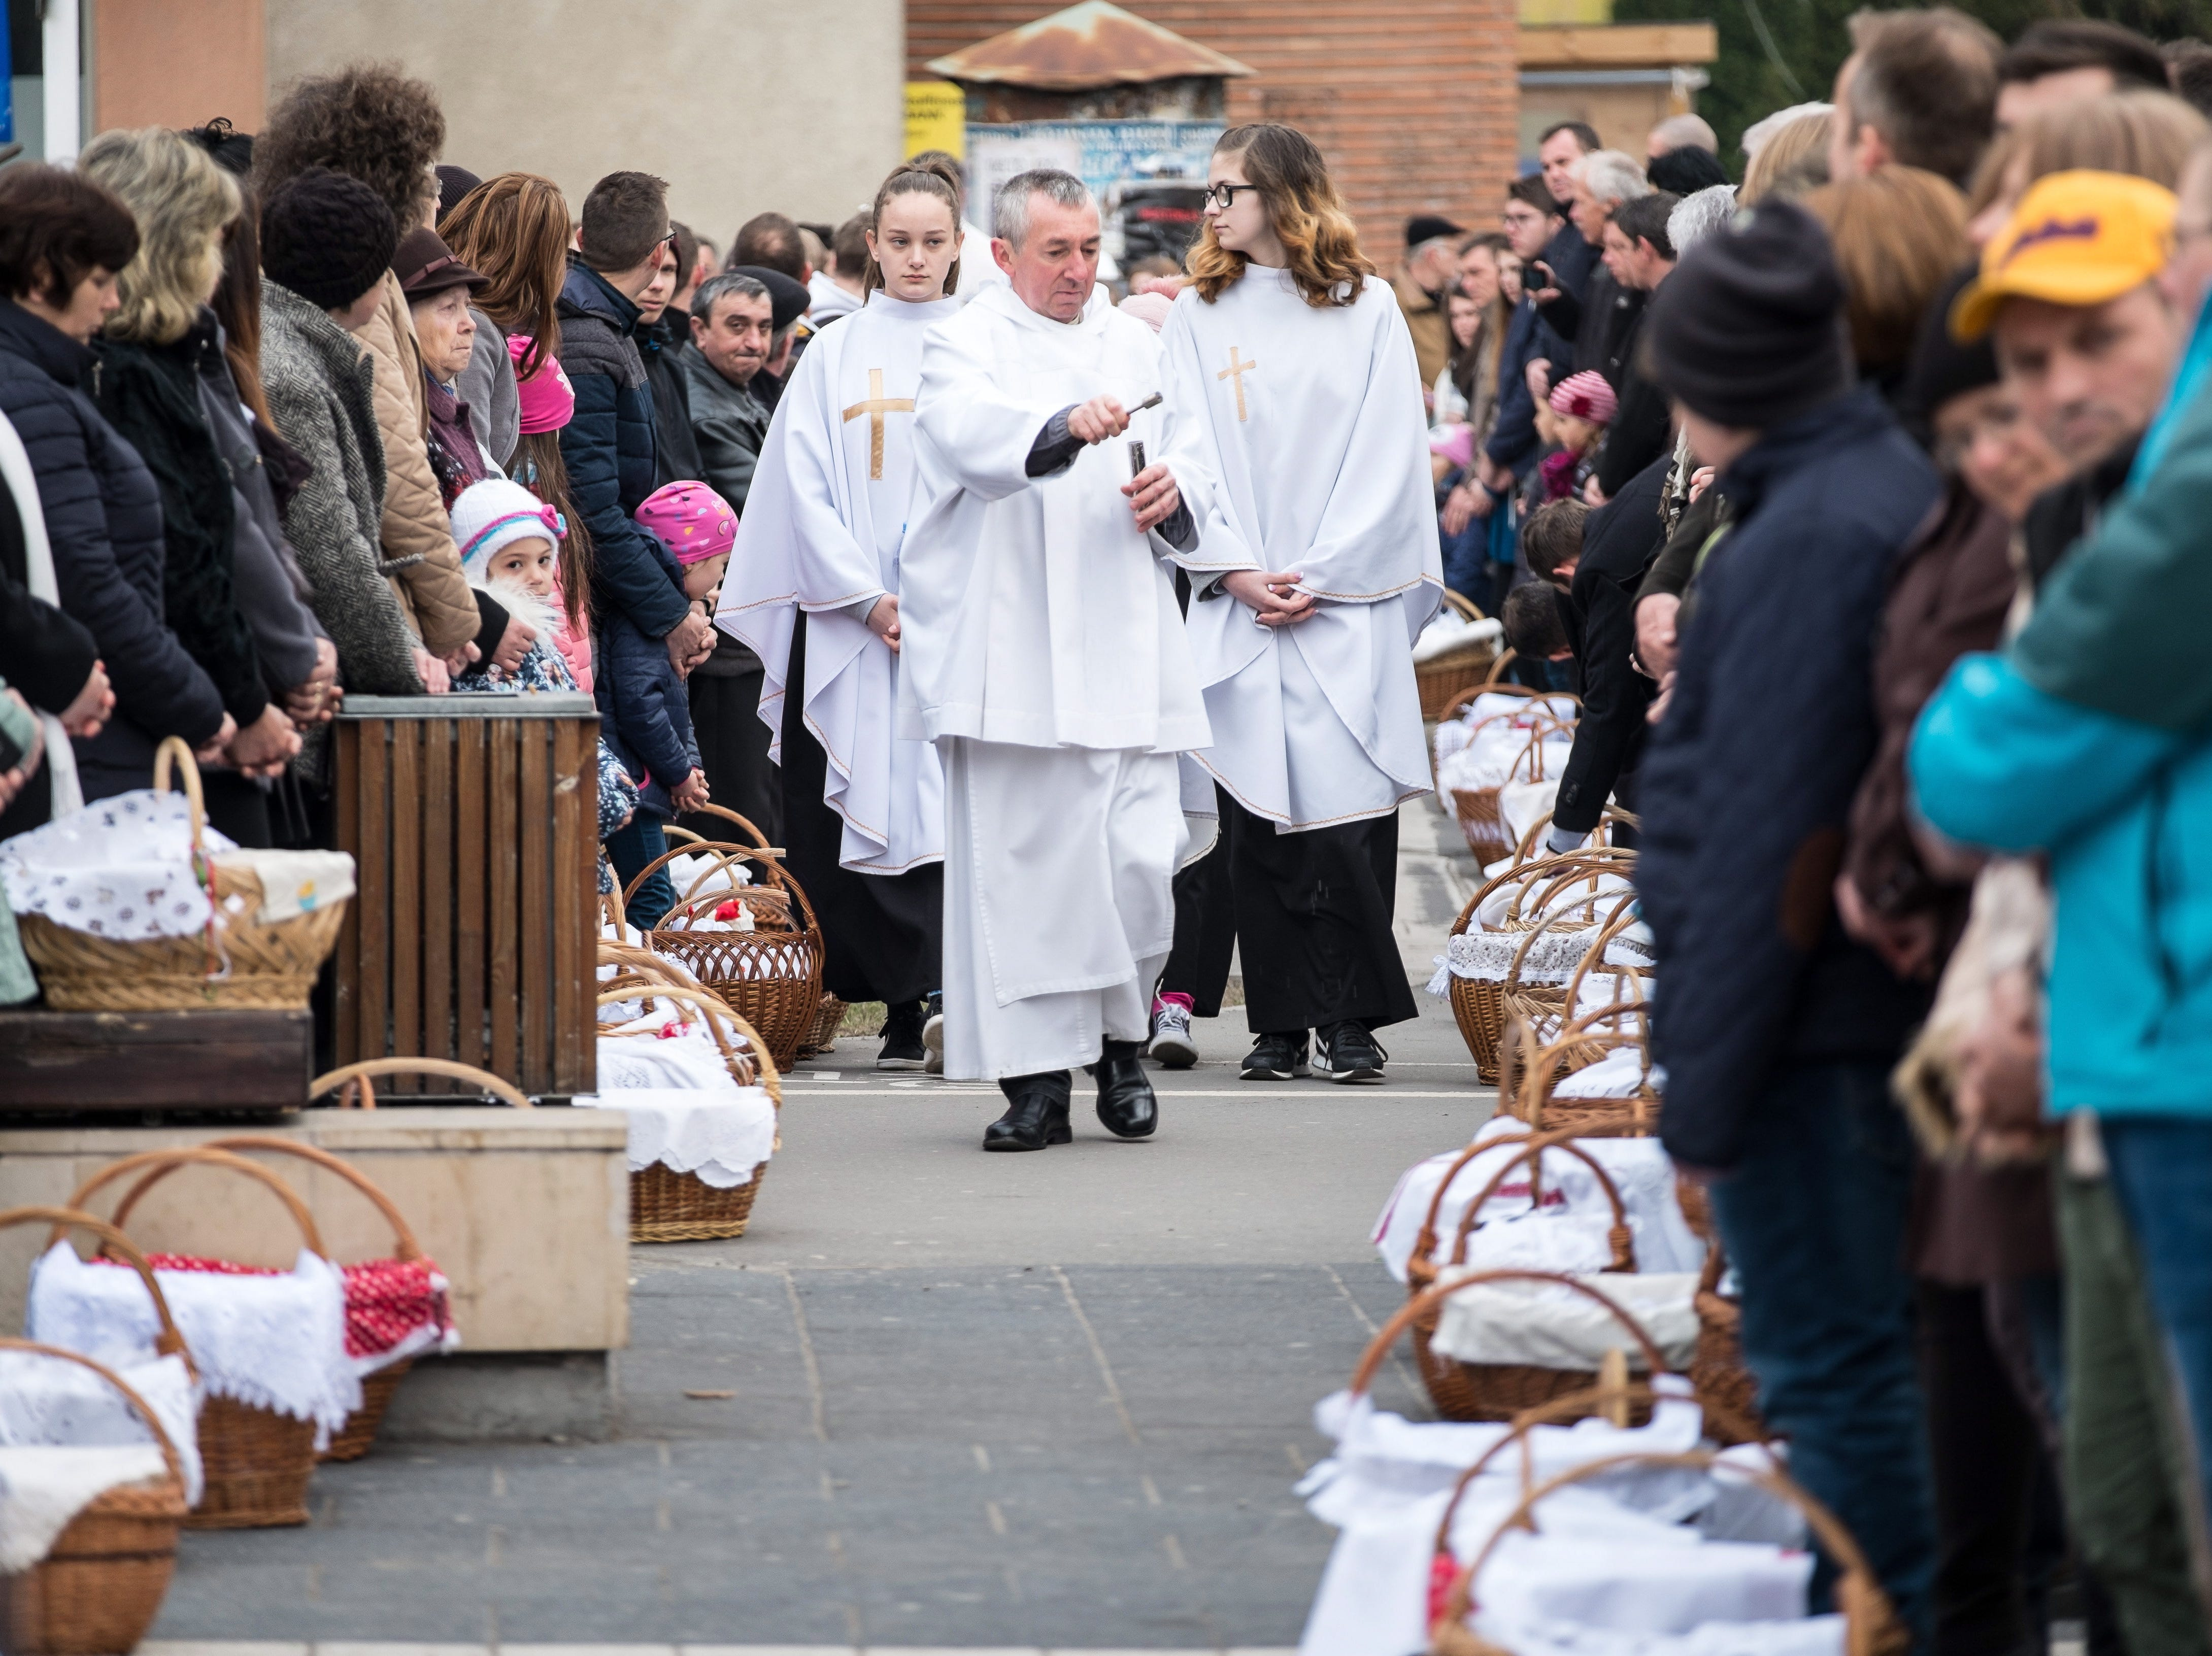 A Catholic priest blesses the Easter baskets brought by believers on Easter Sunday in the main square of Csikszereda in Transylvania, Romania on April 21, 2019.